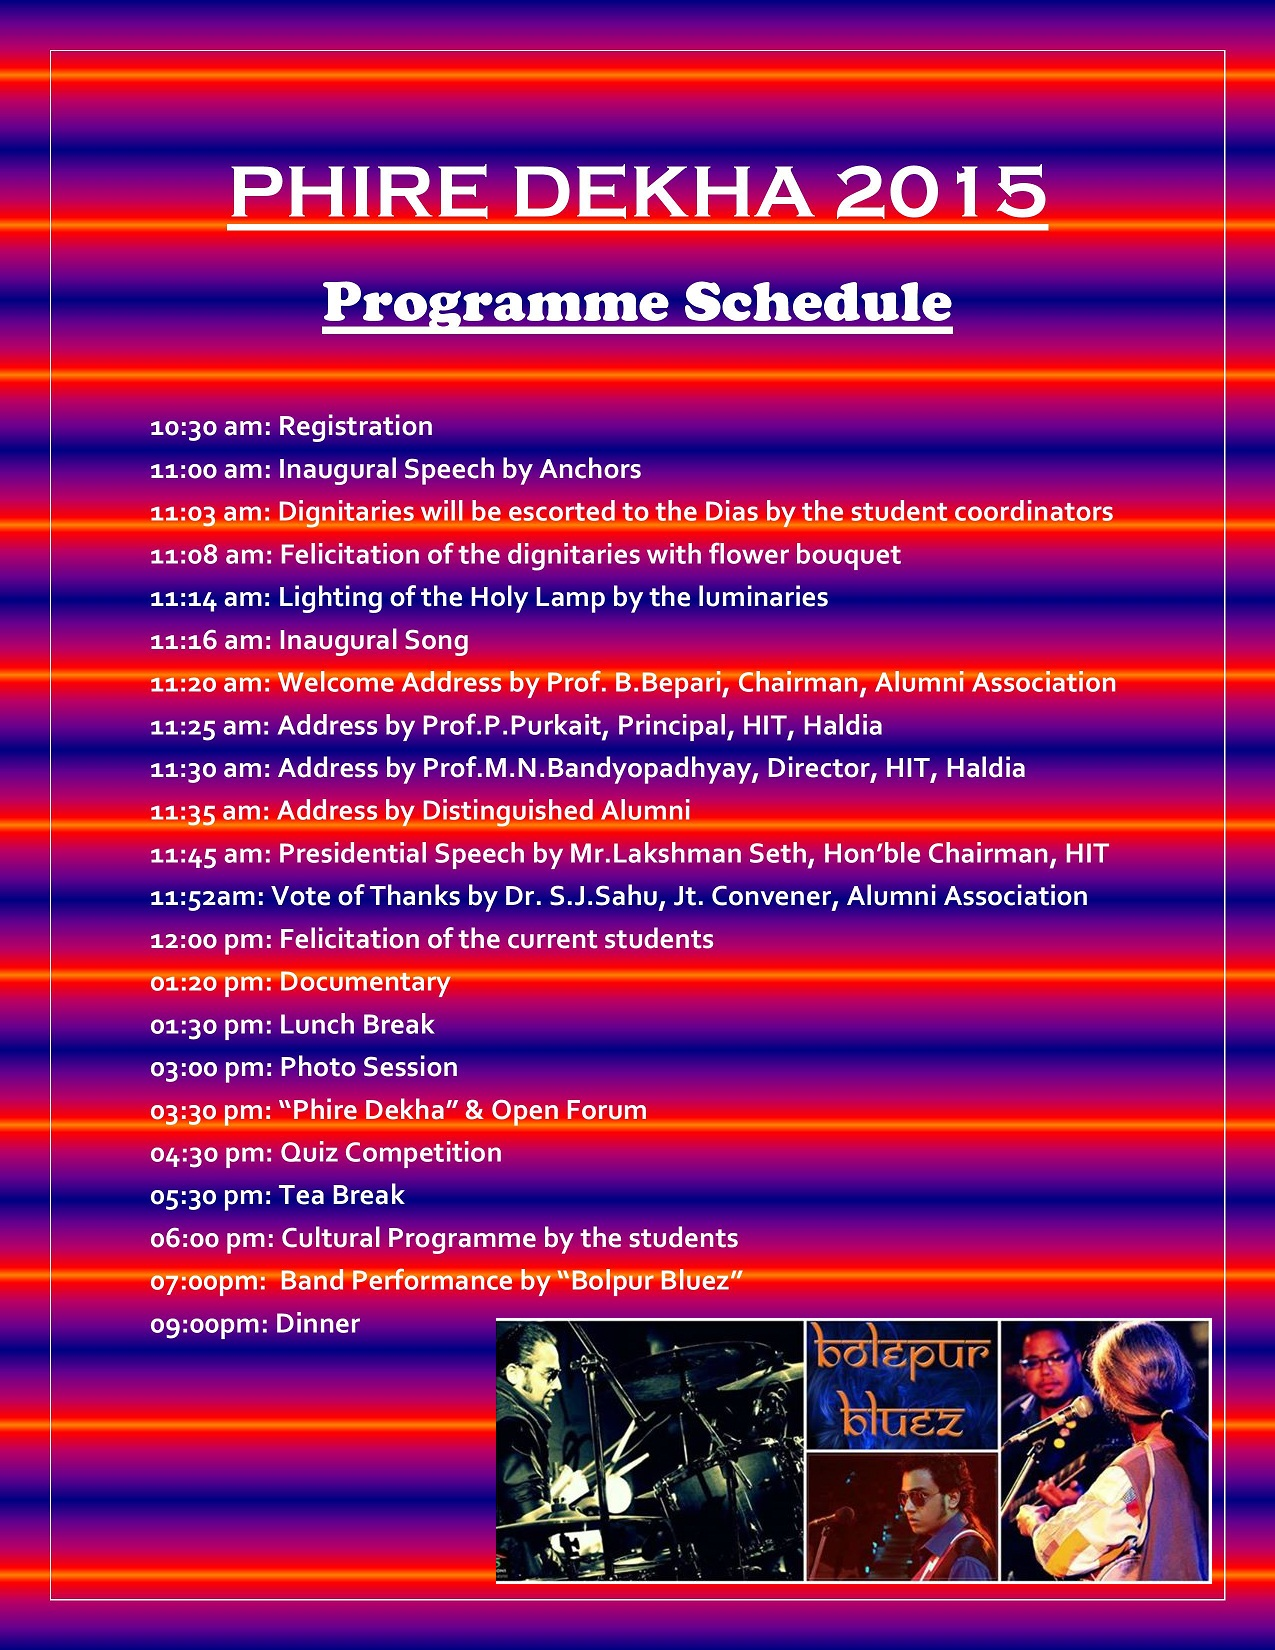 Detailed_programme_schedule_of_PHIRE_DEKHA_2015